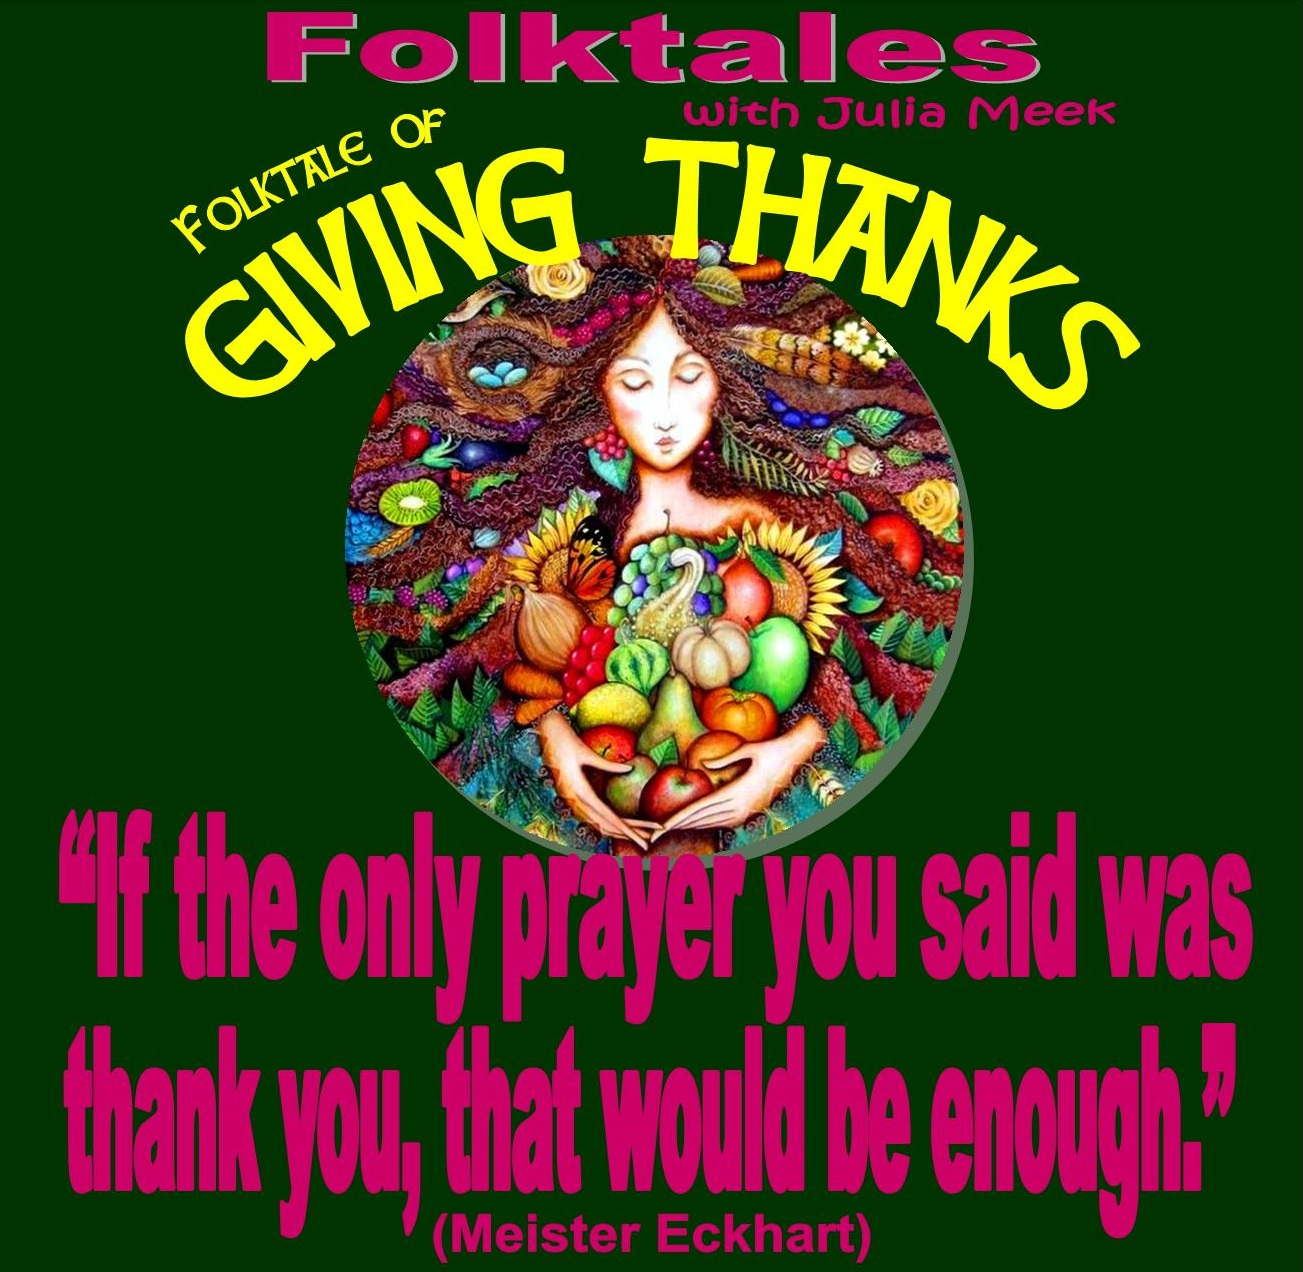 Caption: WBOI's Folktale of Giving Thanks, Credit: Julia Meek